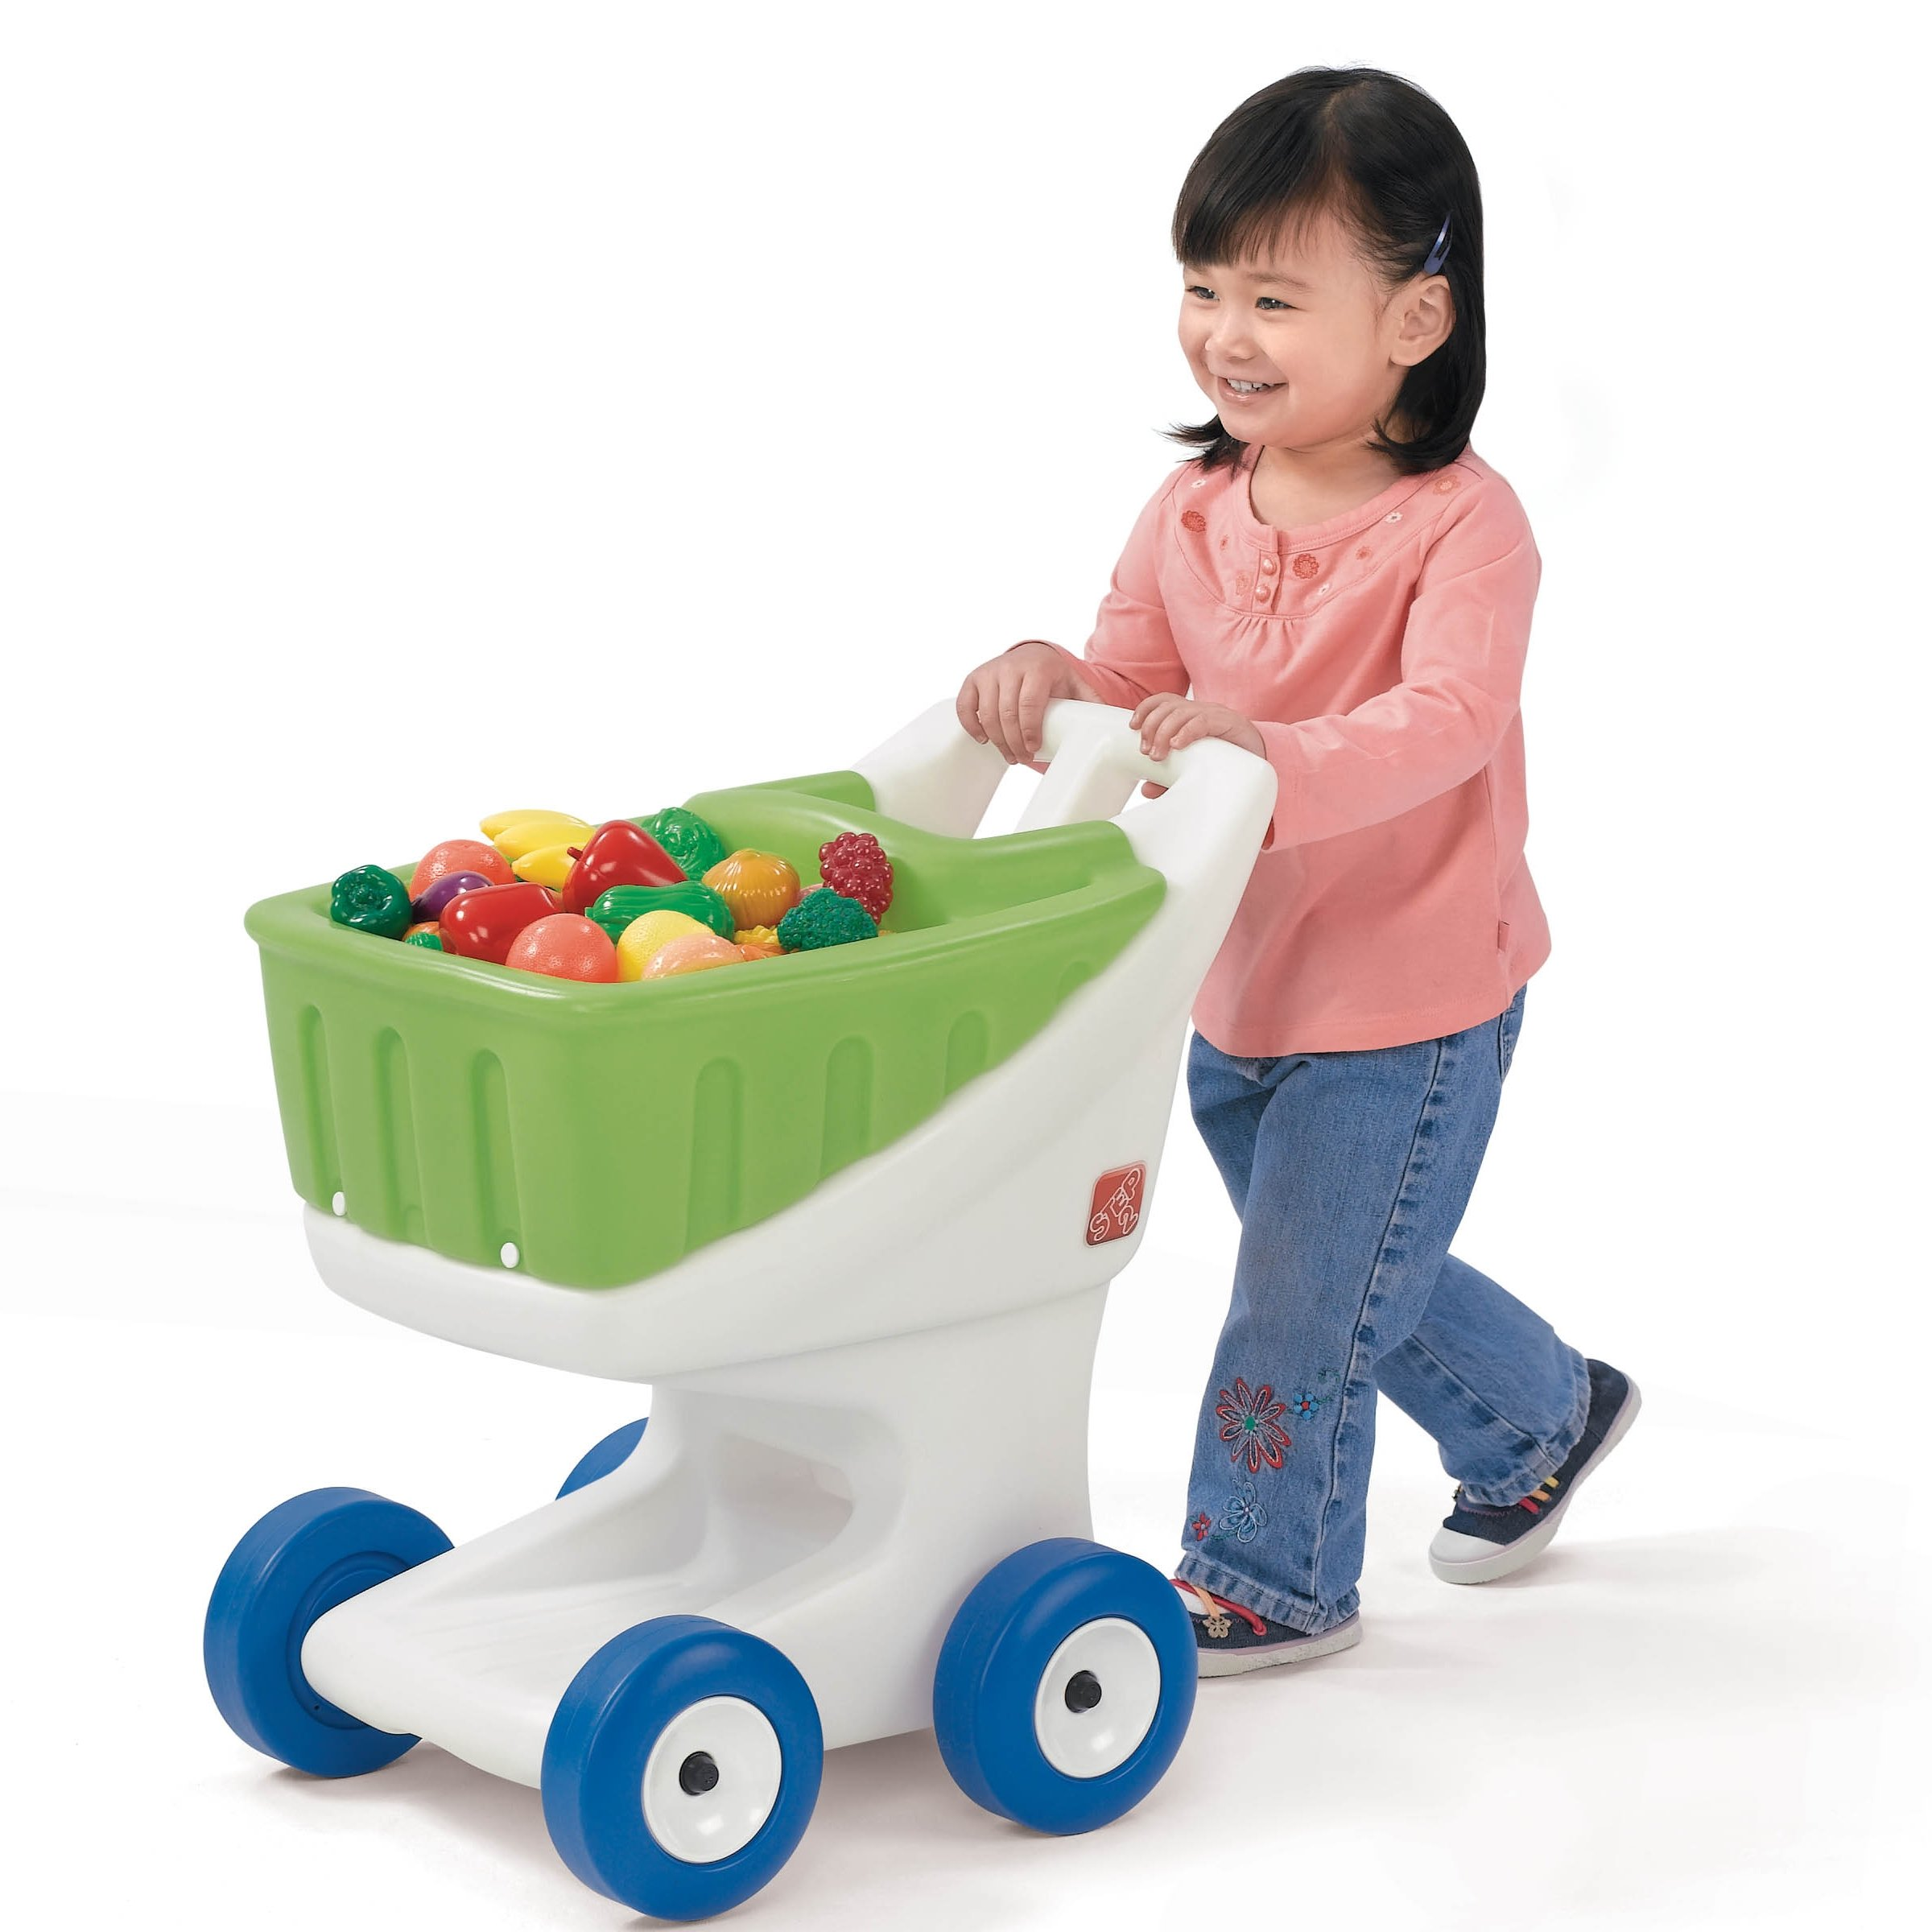 Step2 Little Helper's Kids Grocery Cart by Step2 (Image #1)